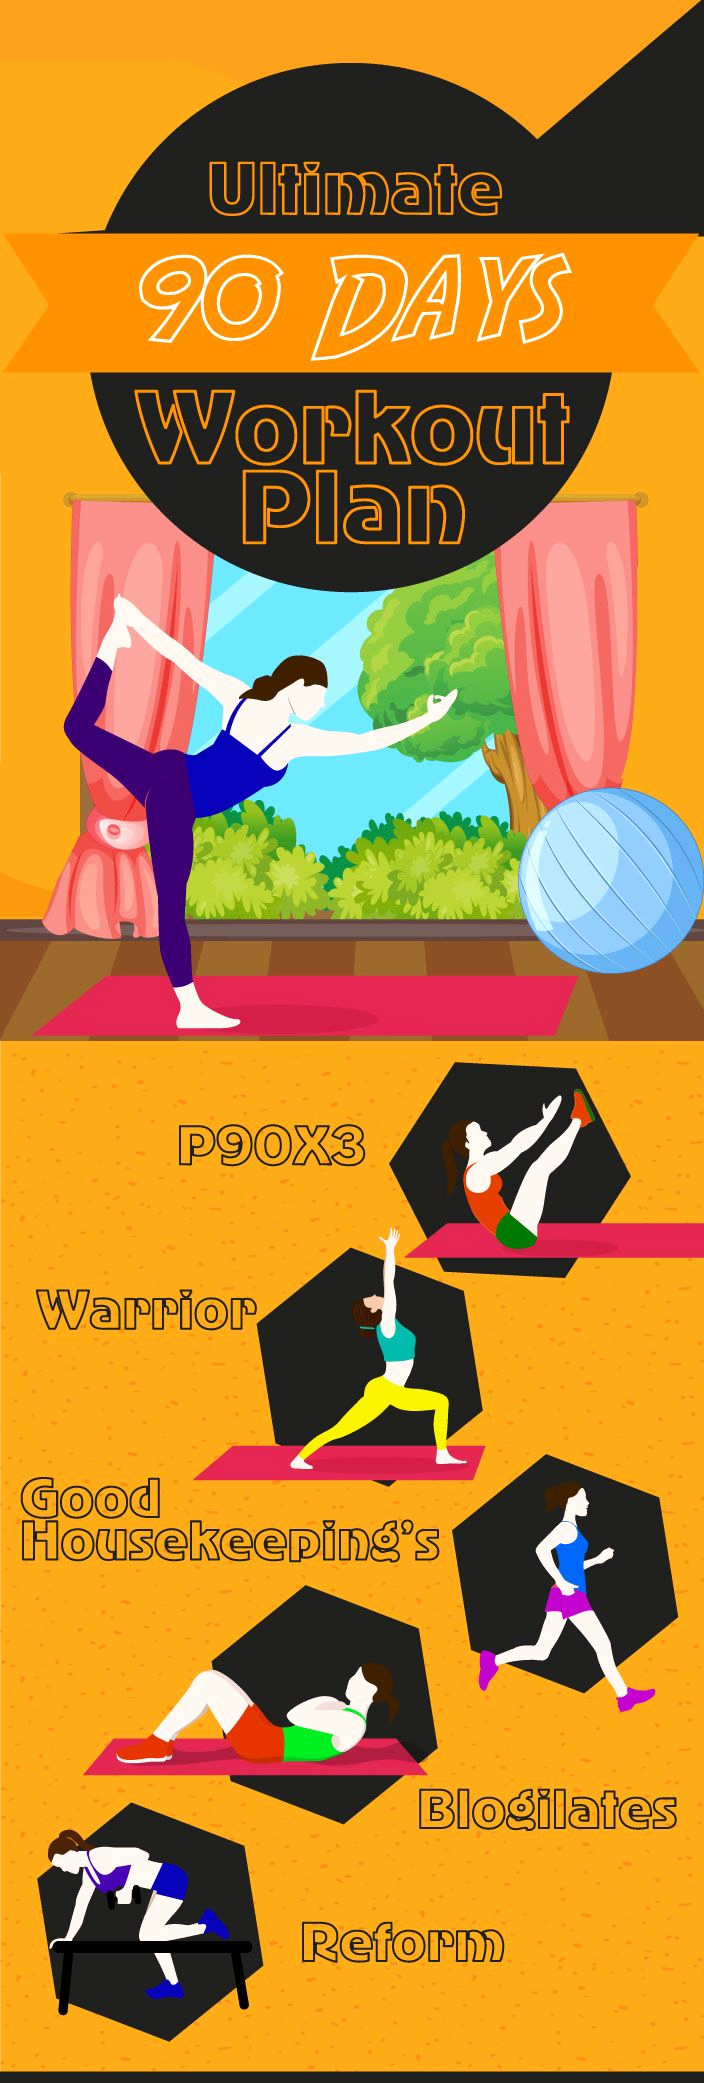 90 Day Workout Plan Unique 25 Best Ideas About 90 Day Workout Plan On Pinterest